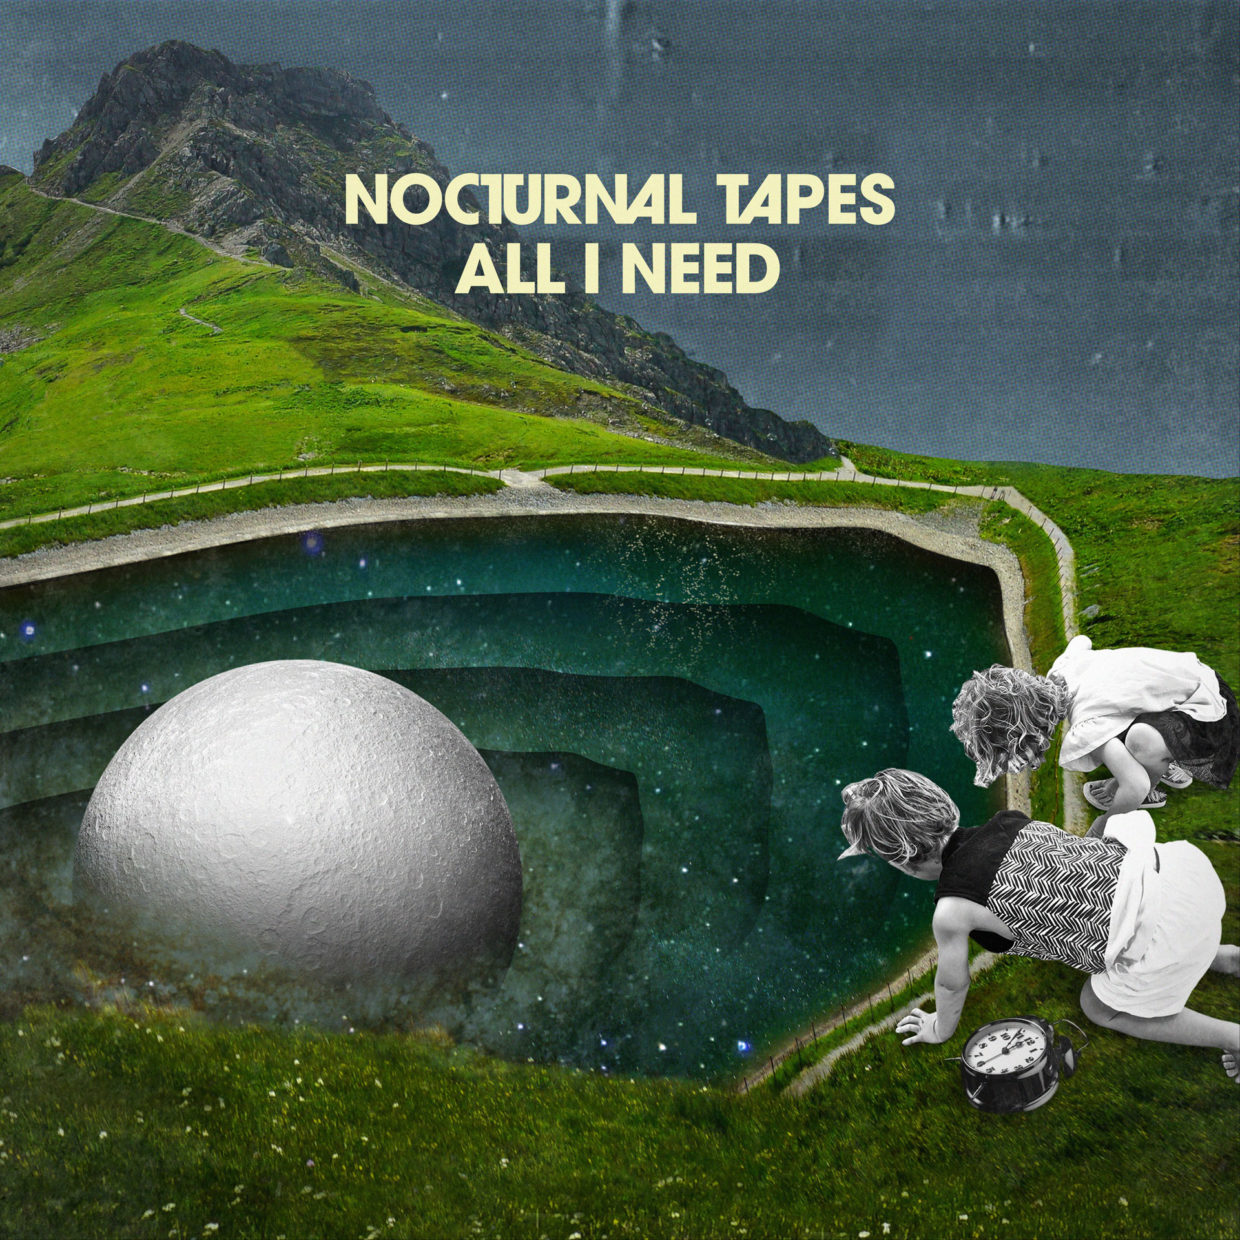 Nocturnal Tapes - All I Need